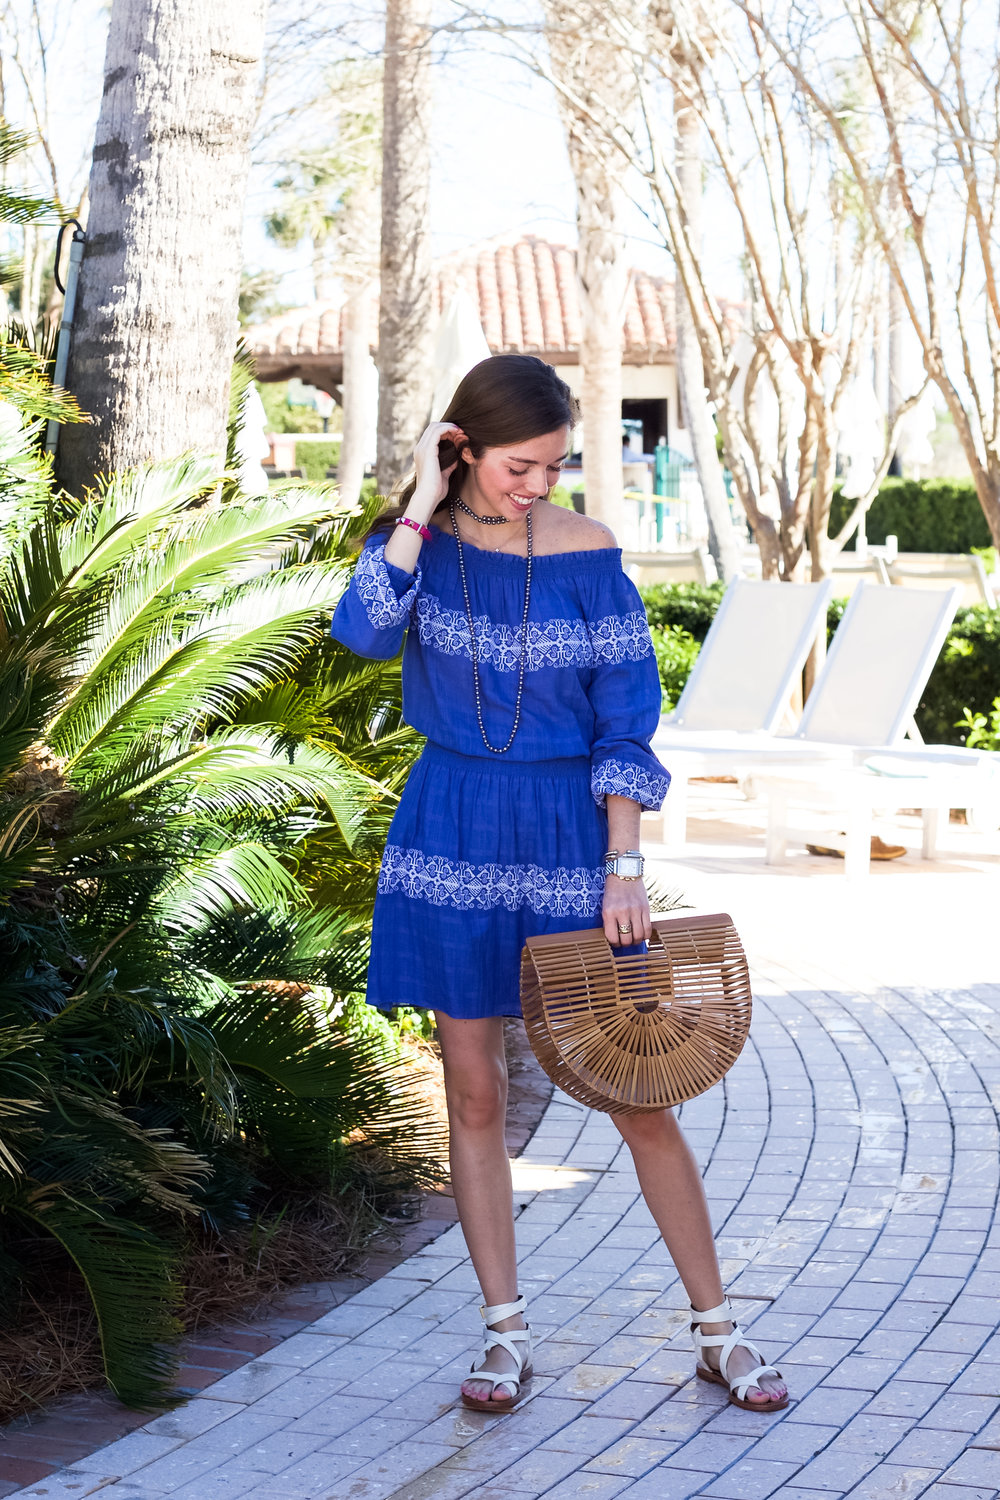 lcb style fashion blogger tory burch dress pool beach sea island (33 of 52).jpg